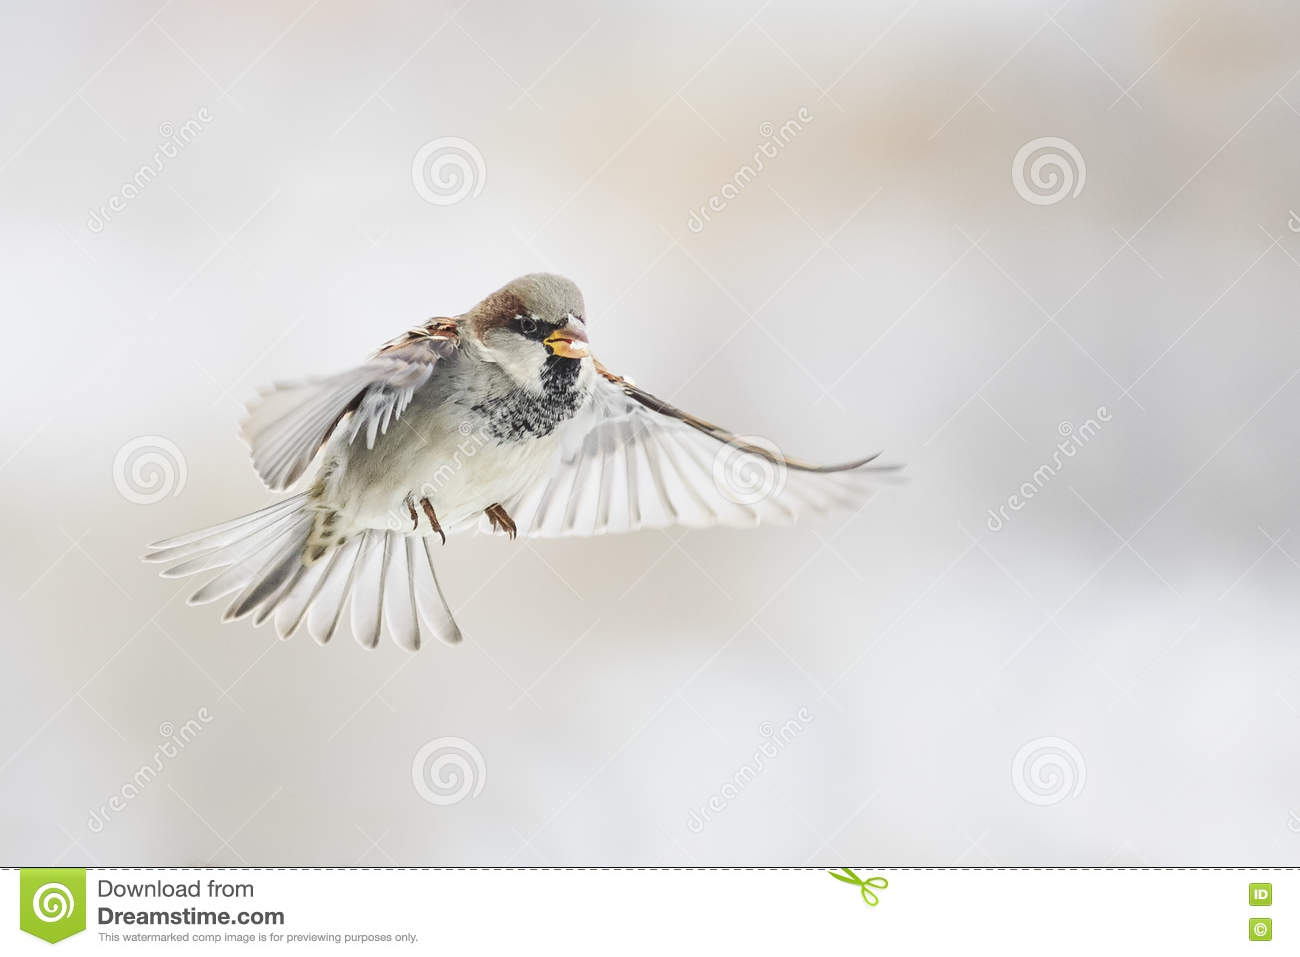 Bird Sparrow is flying straight in the sky